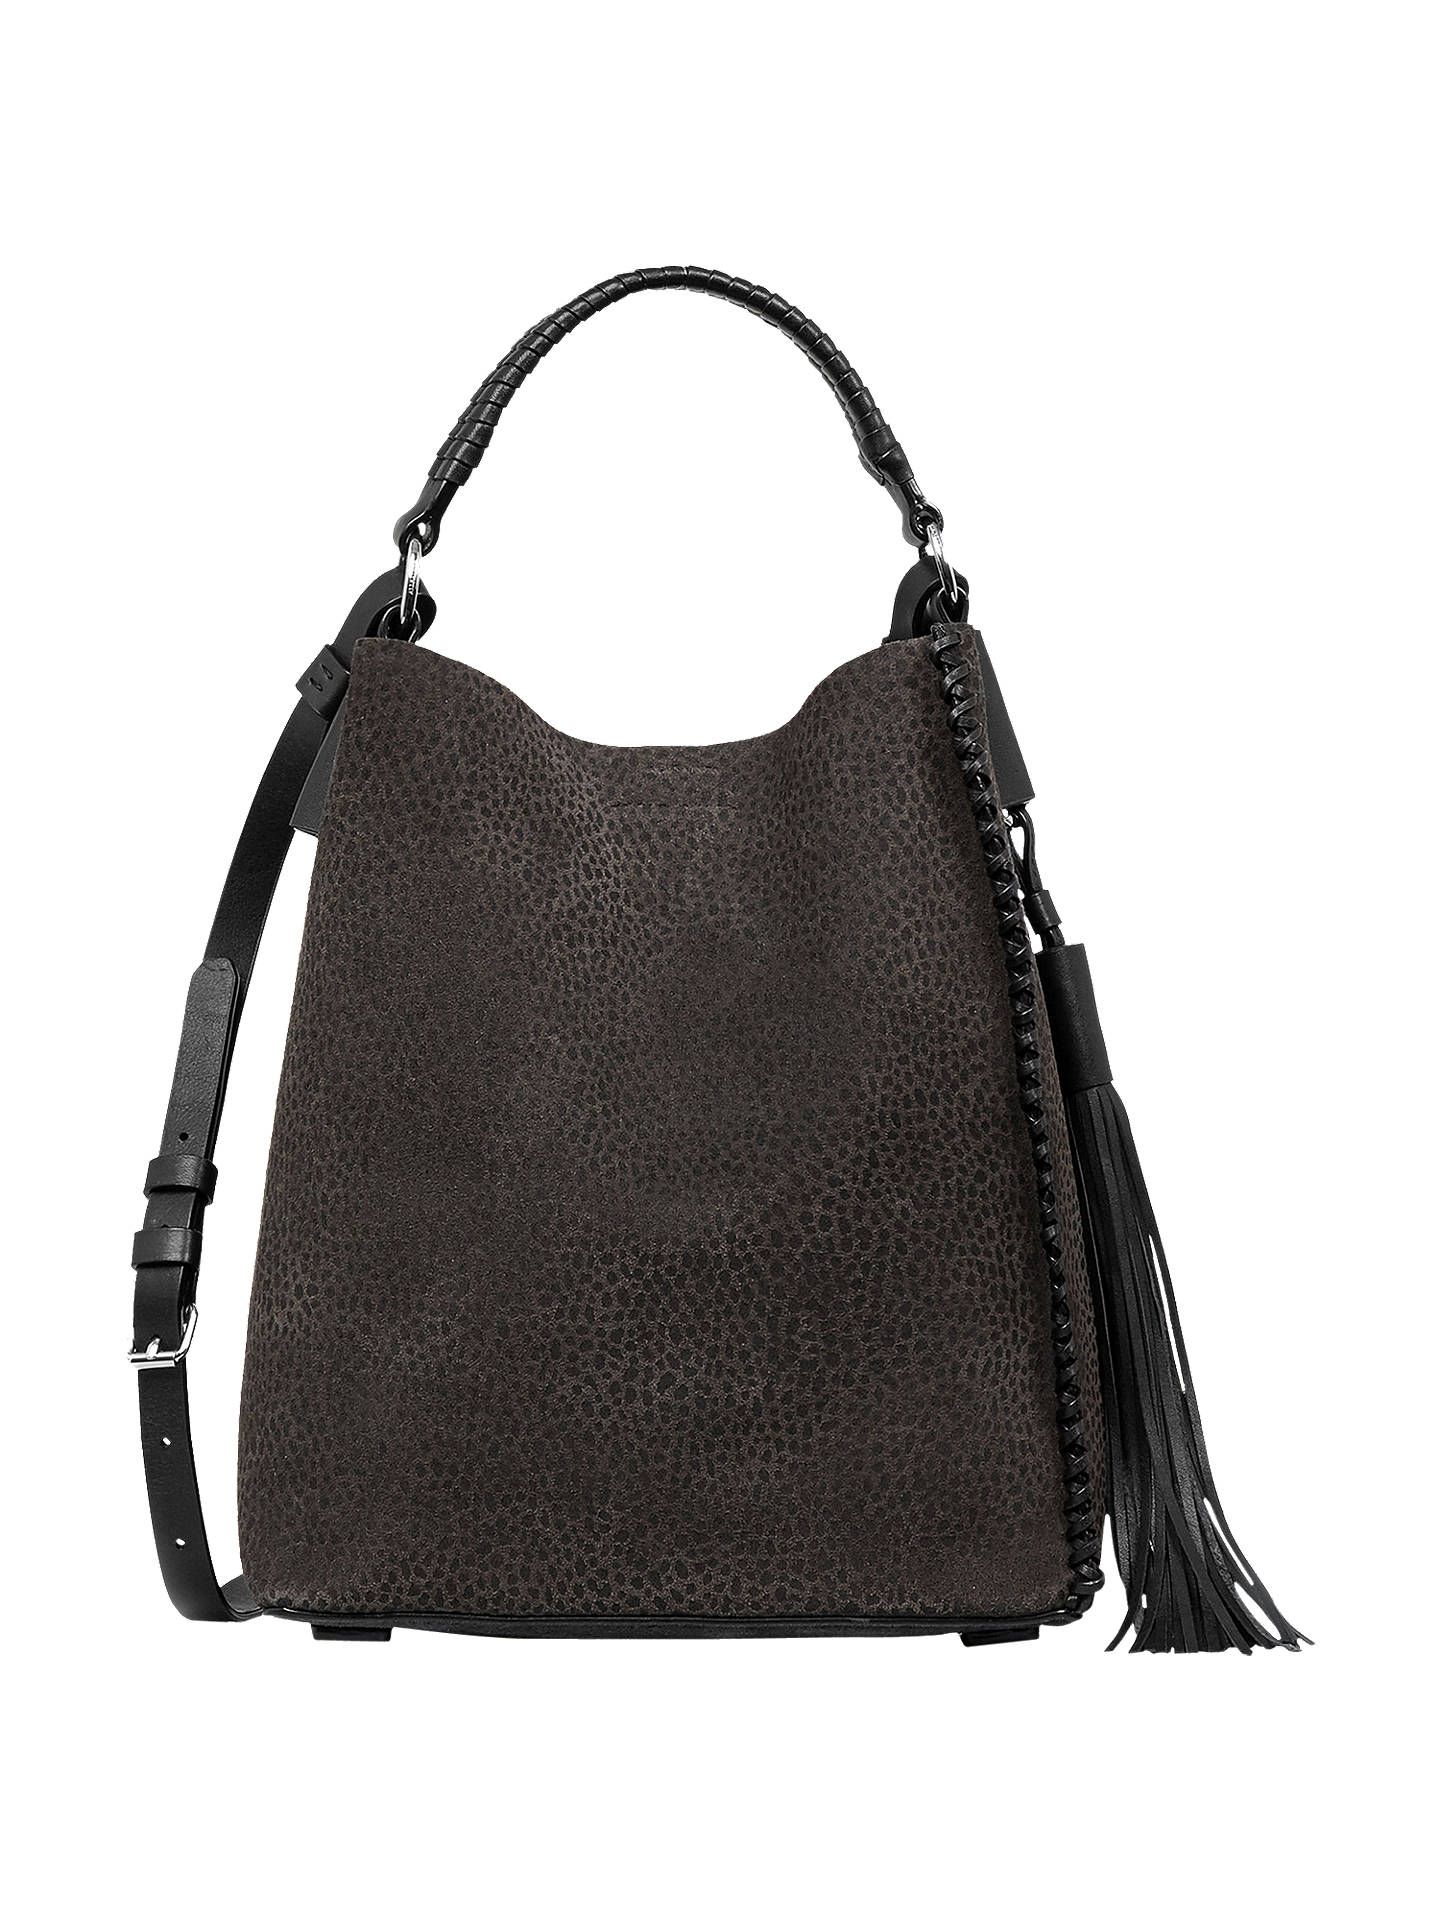 accad08a2c4cad Buy AllSaints Pearl Leather Mini Hobo Bag